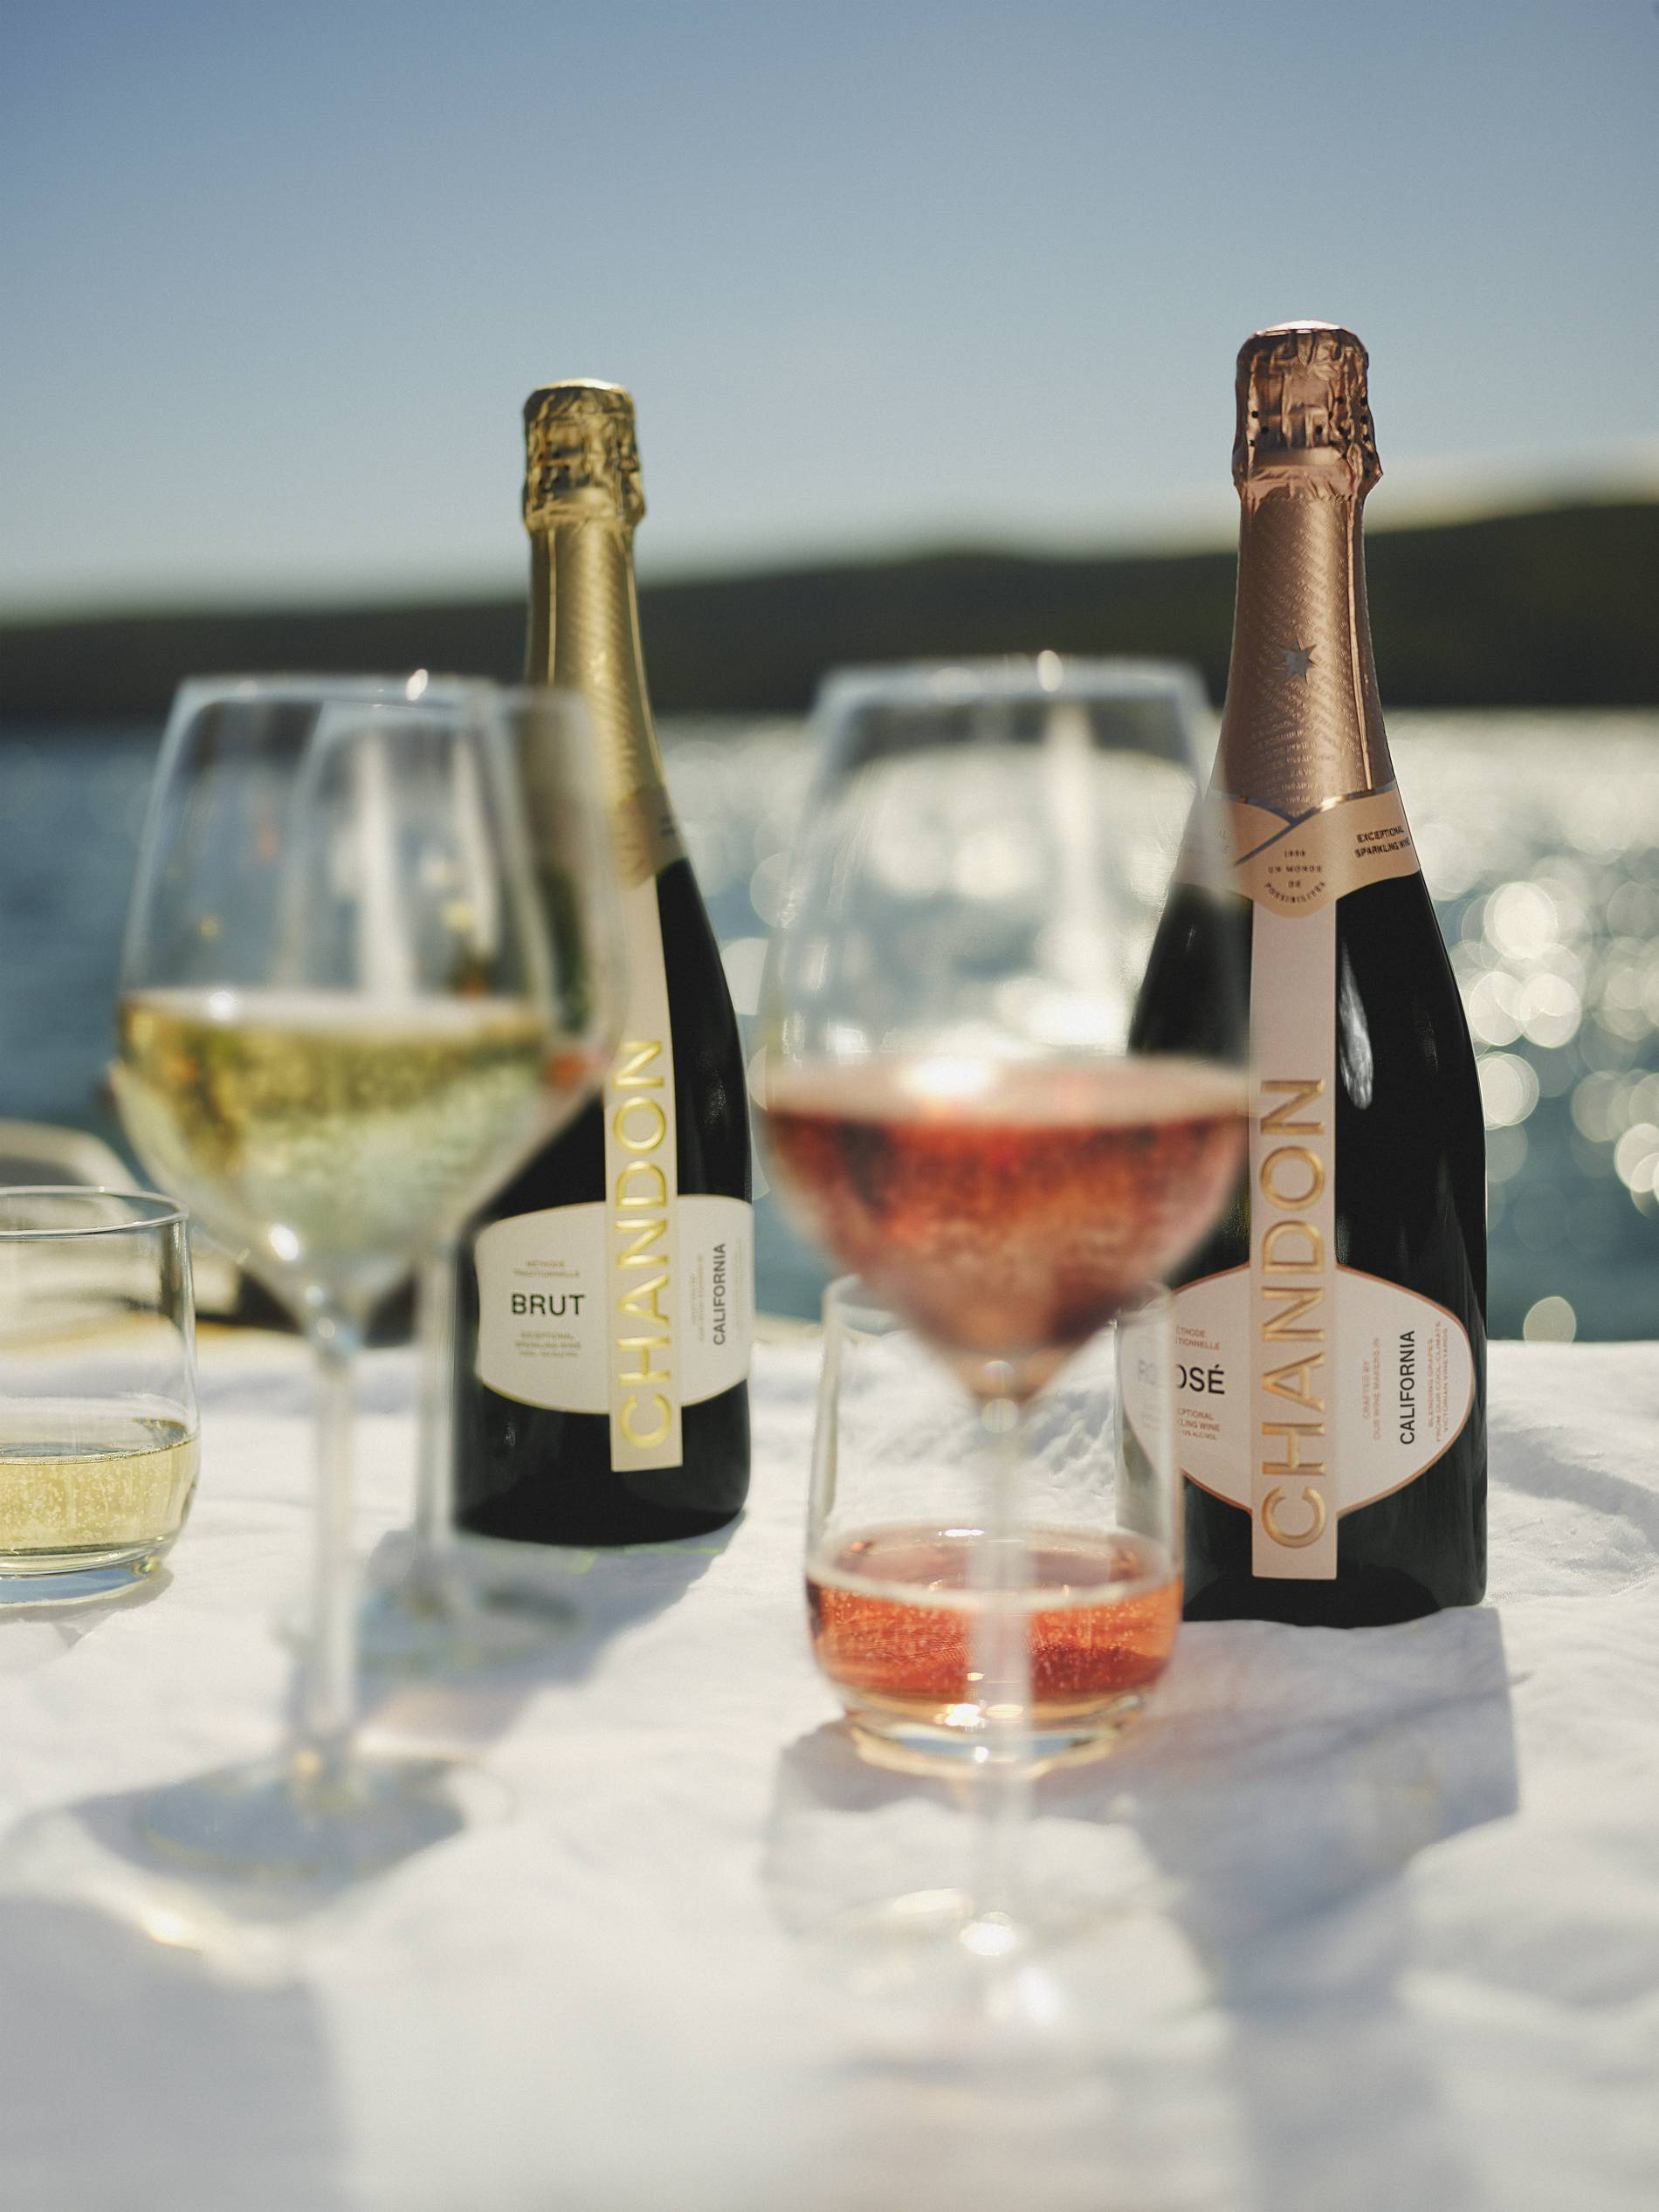 Chandon Brut and Rose new bottle 2021